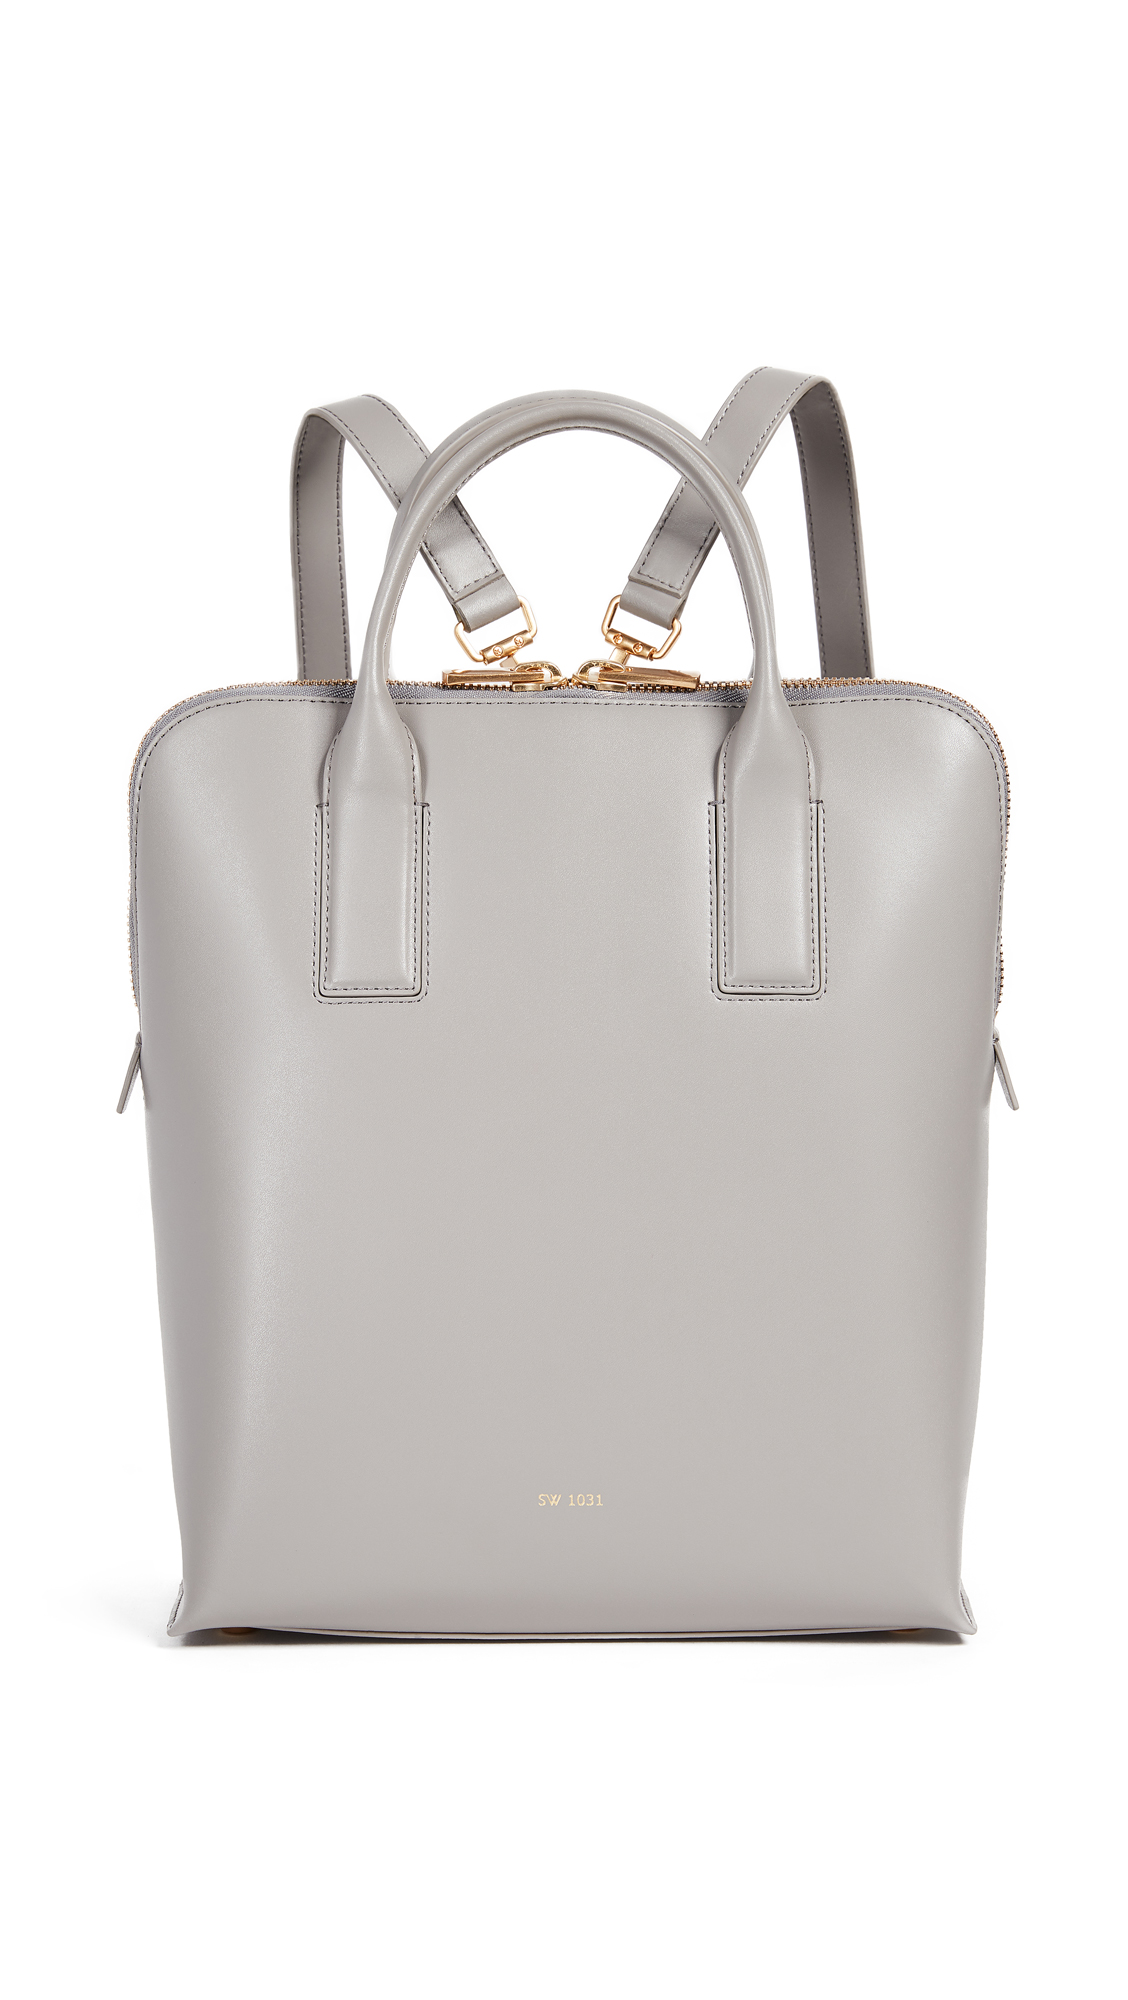 Sarah White Convertible Tablet Backpack - Dove Grey